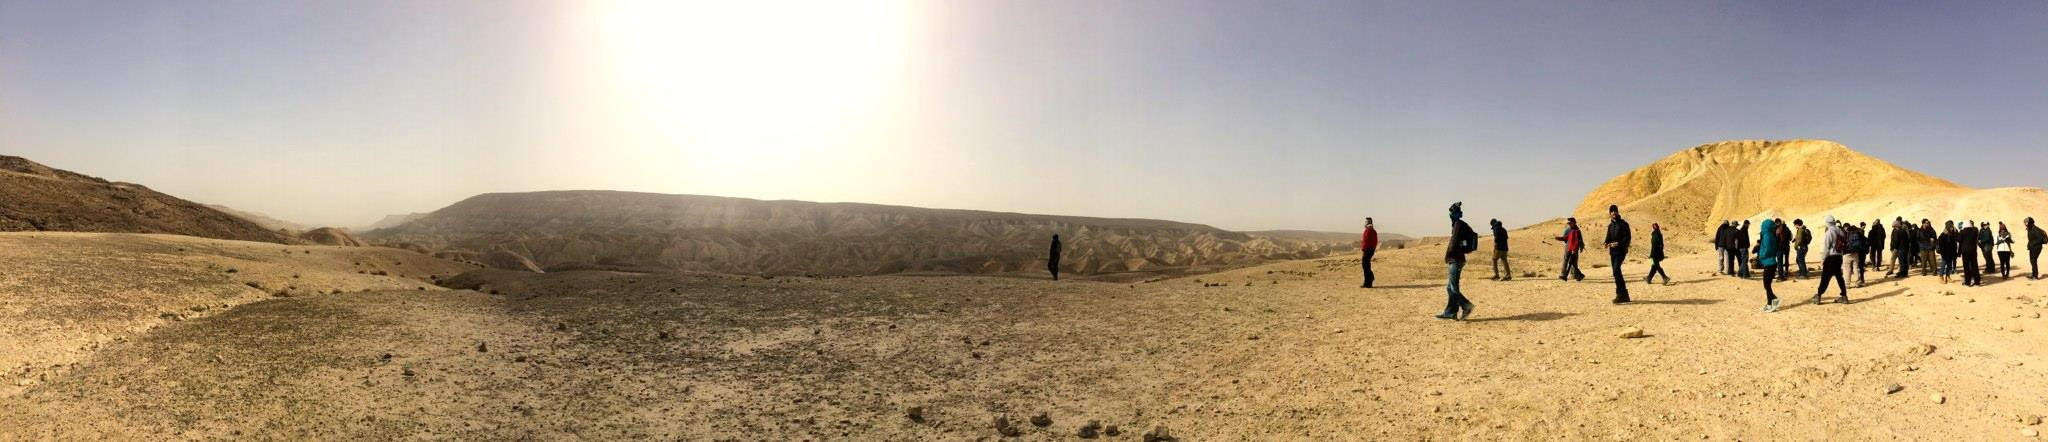 Hiking in the Negev Desert.